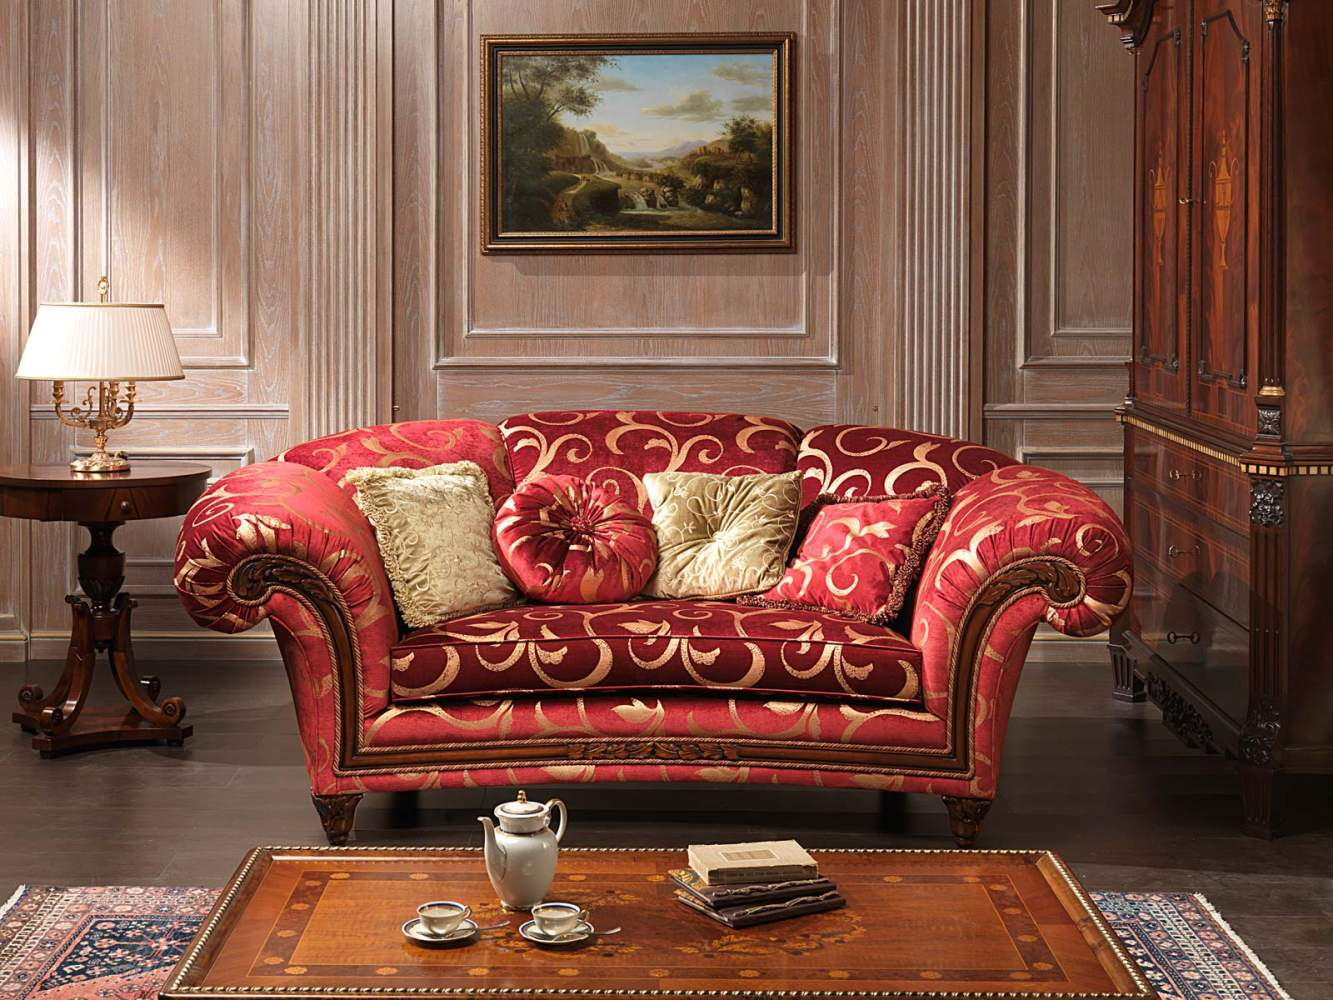 Classic sofa Palace and table